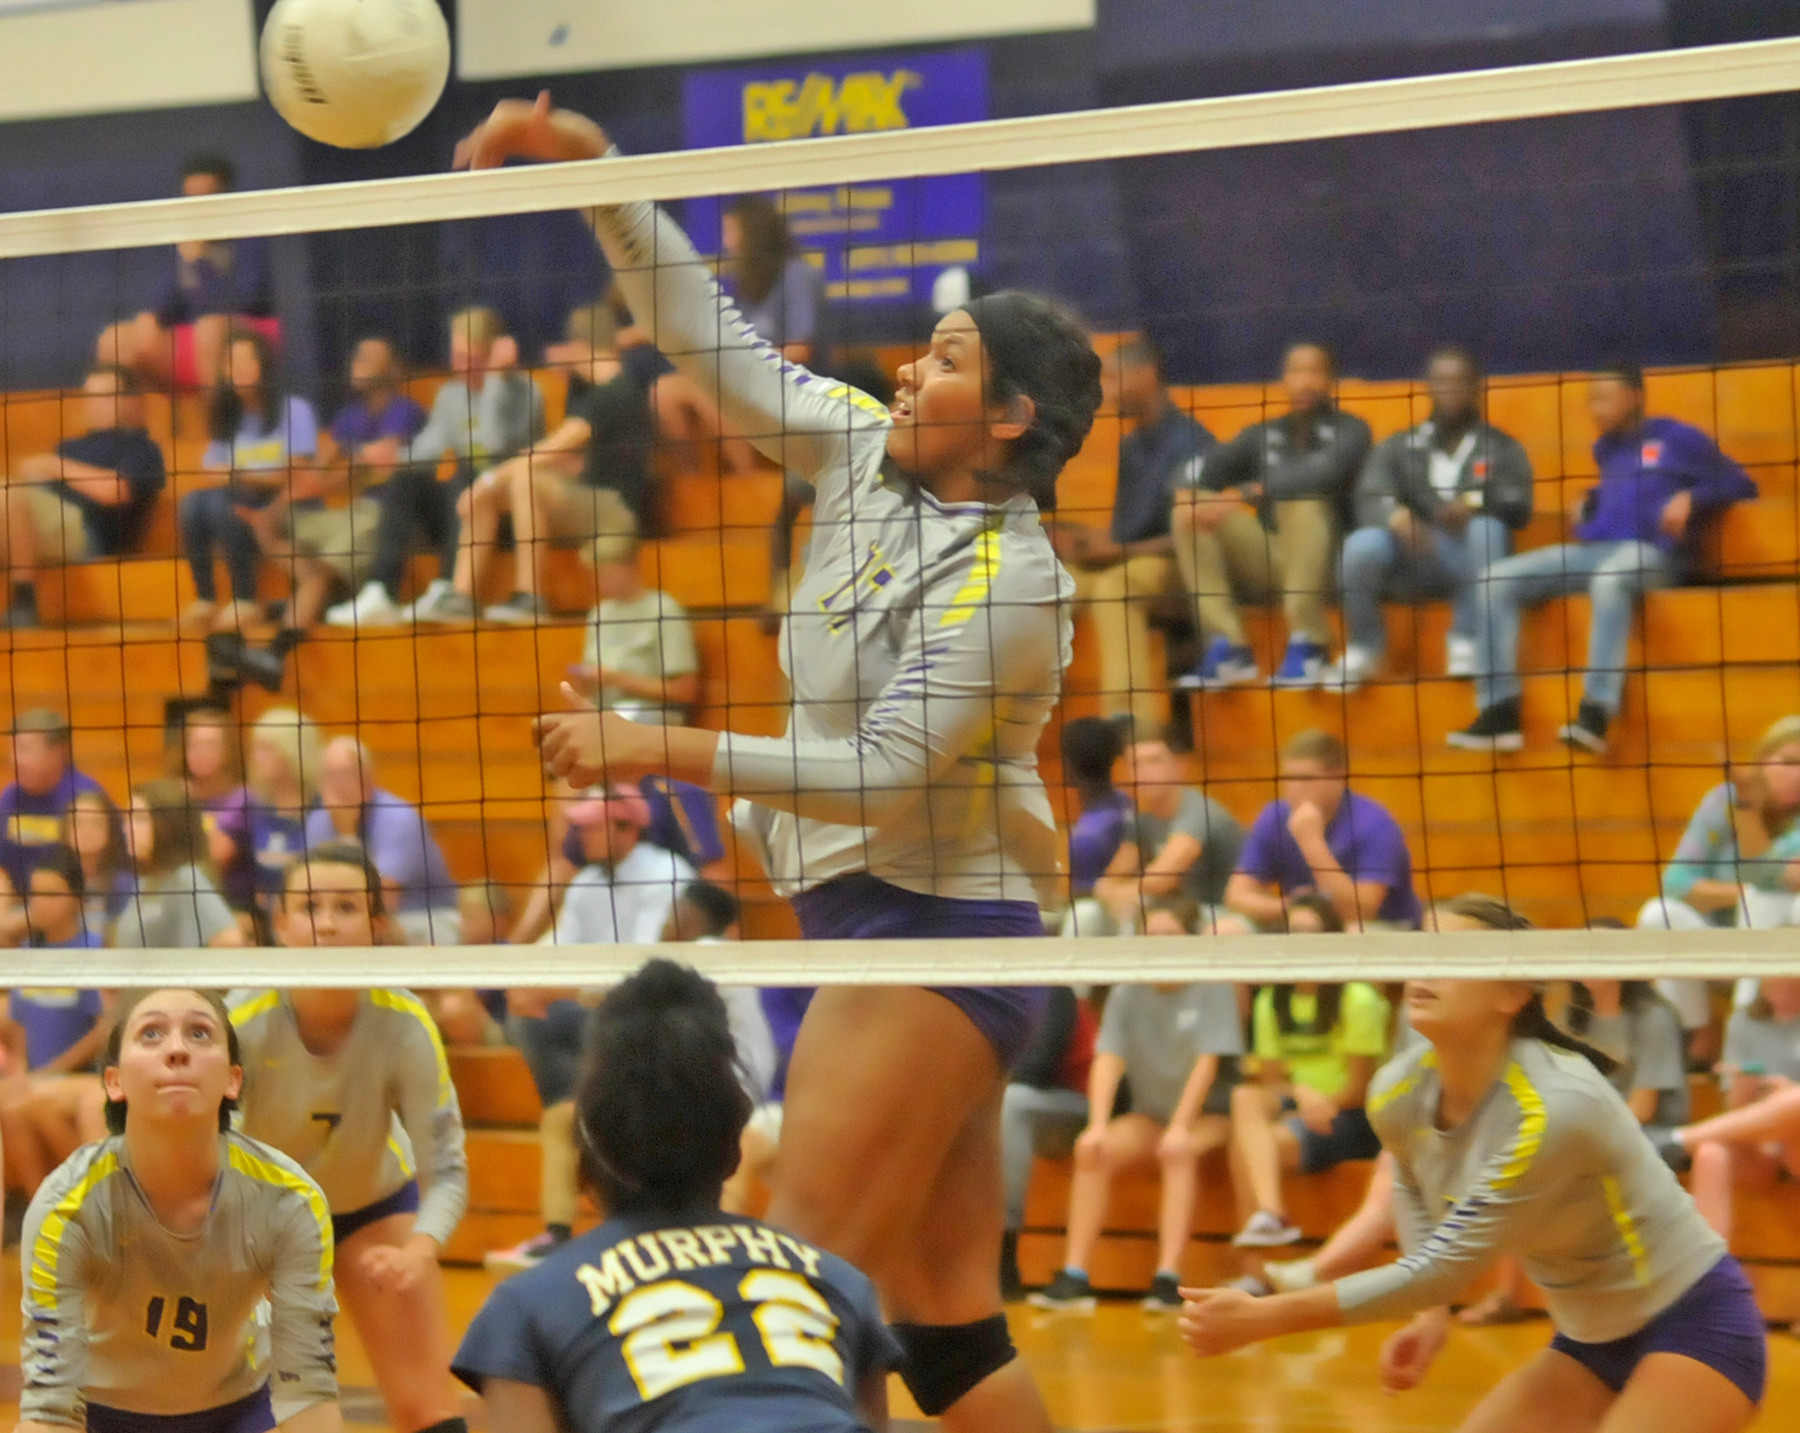 Bri Turner hits for Daphne in home opener